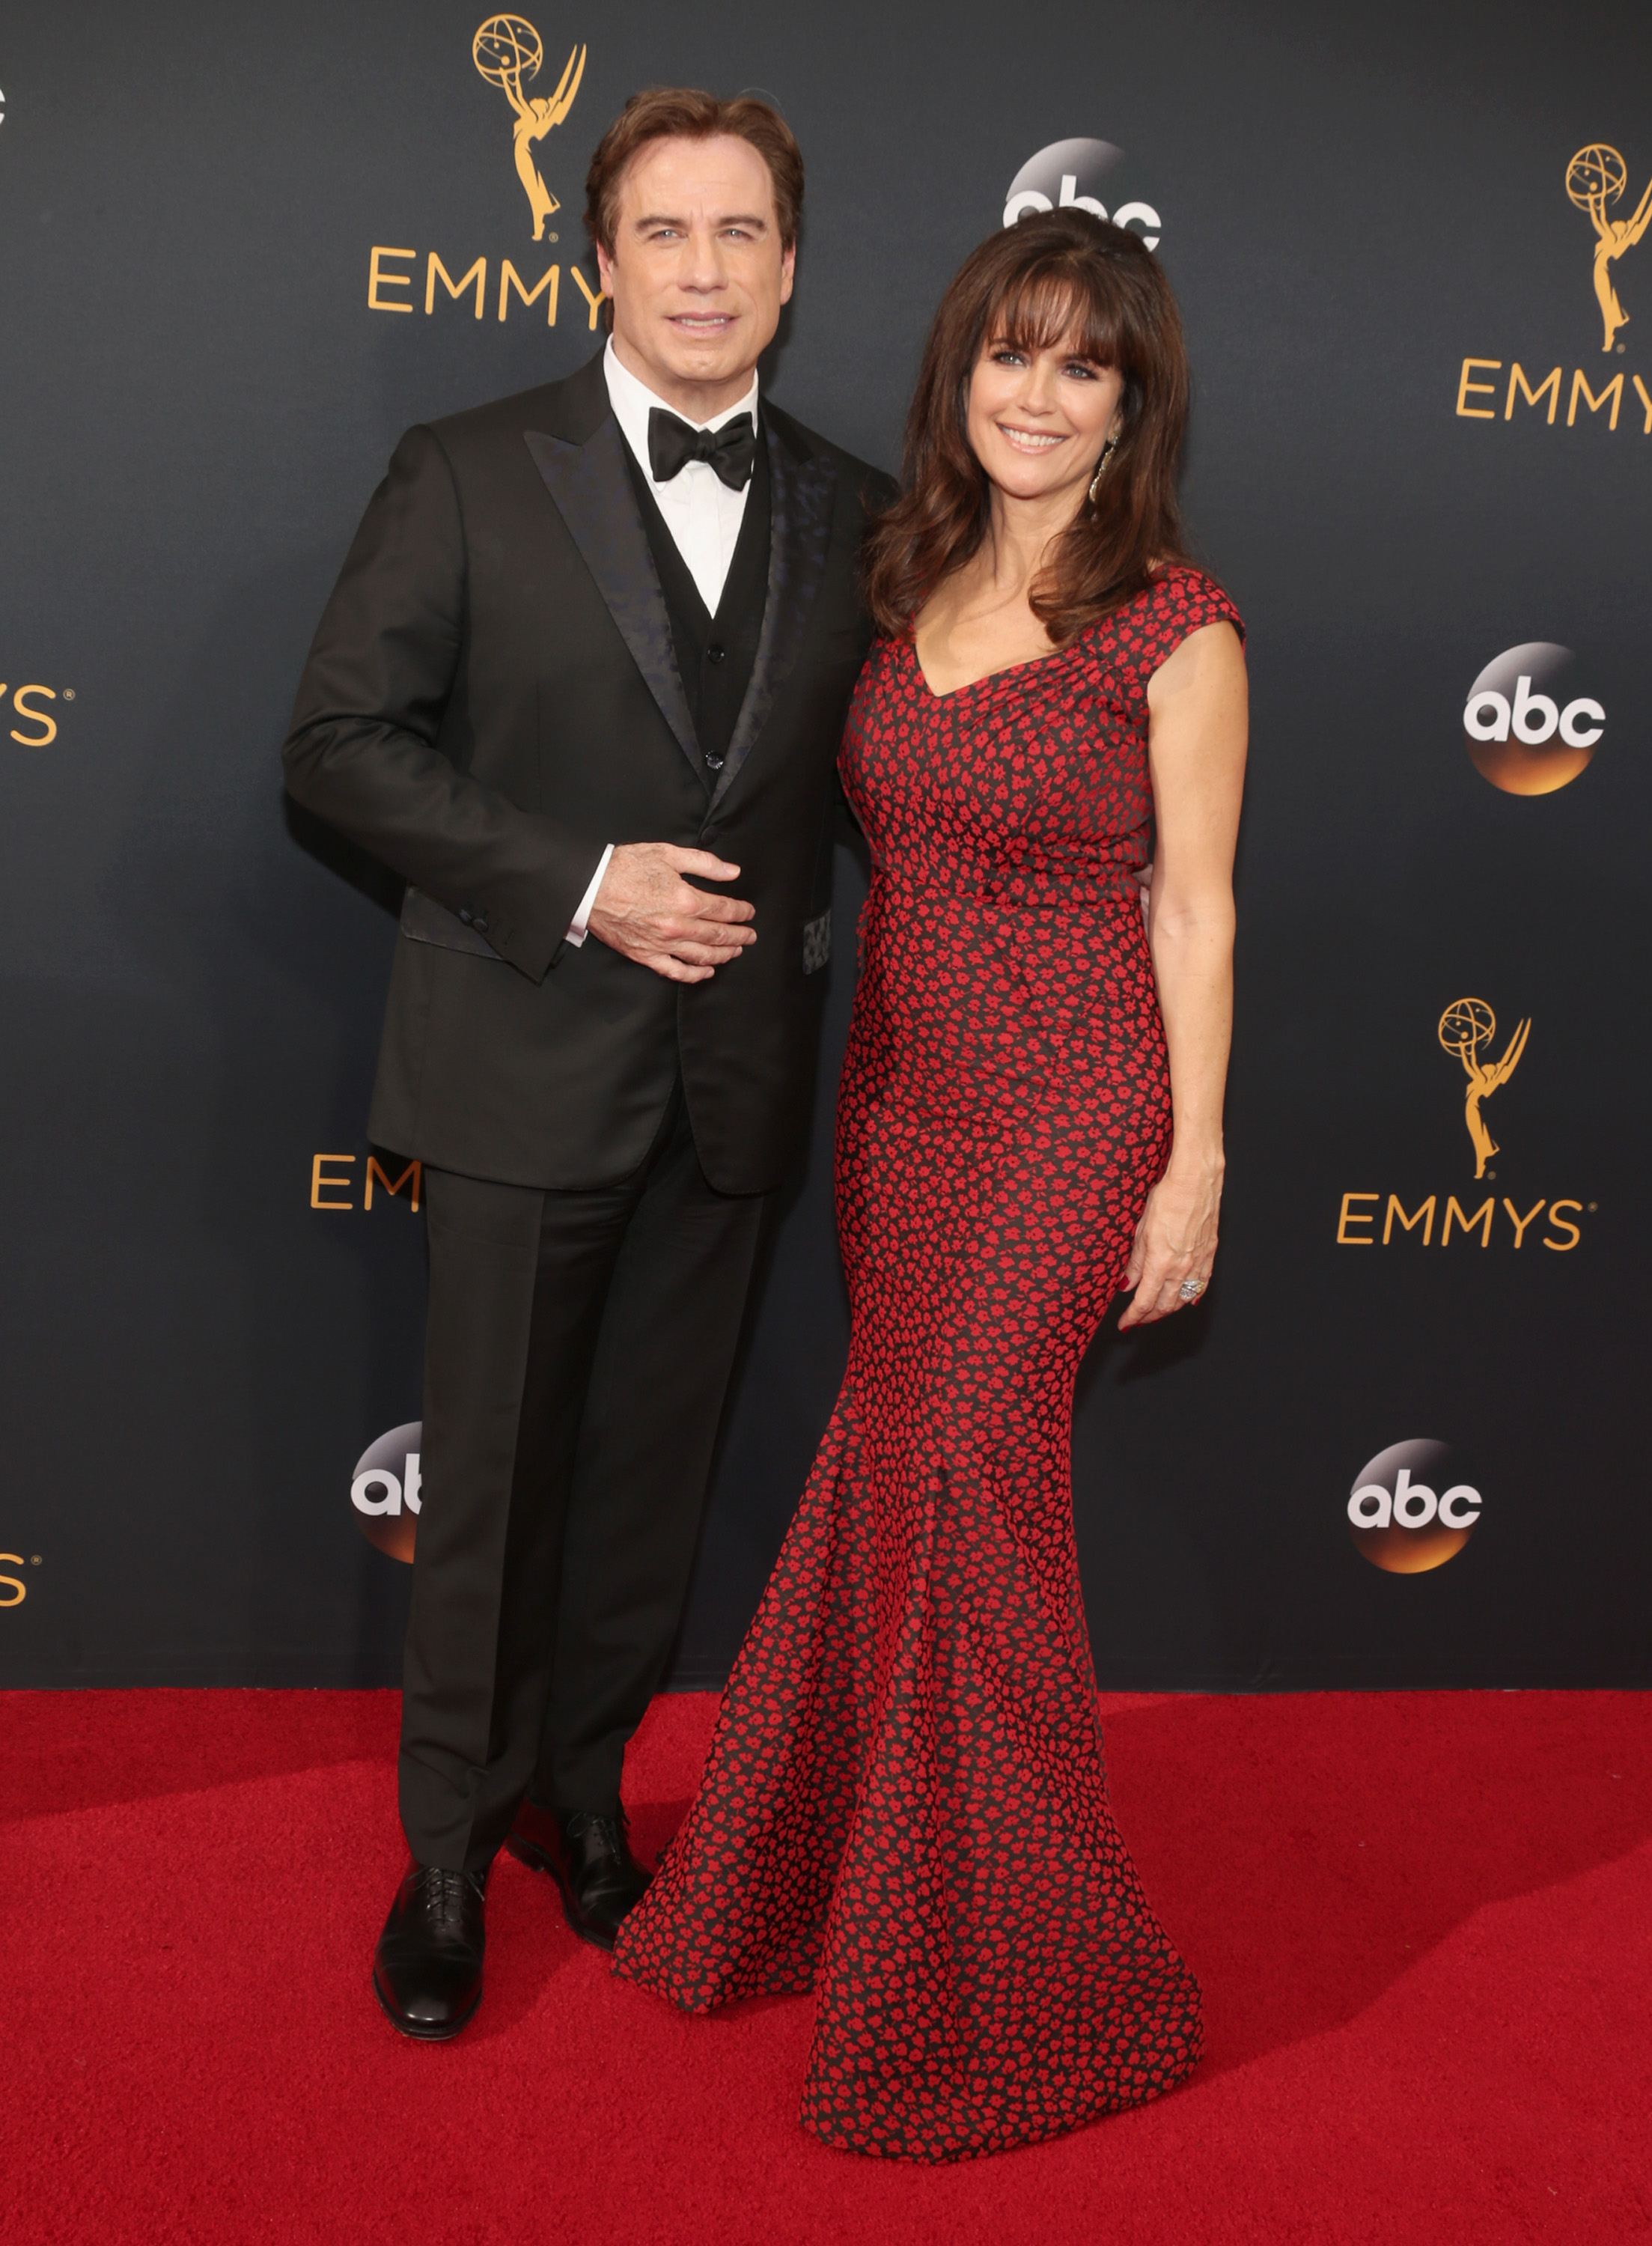 John Travolta and Kelly Preston arrive at the 68th Annual Primetime Emmy Awards at Microsoft Theater on Sept. 18, 2016 in Los Angeles.